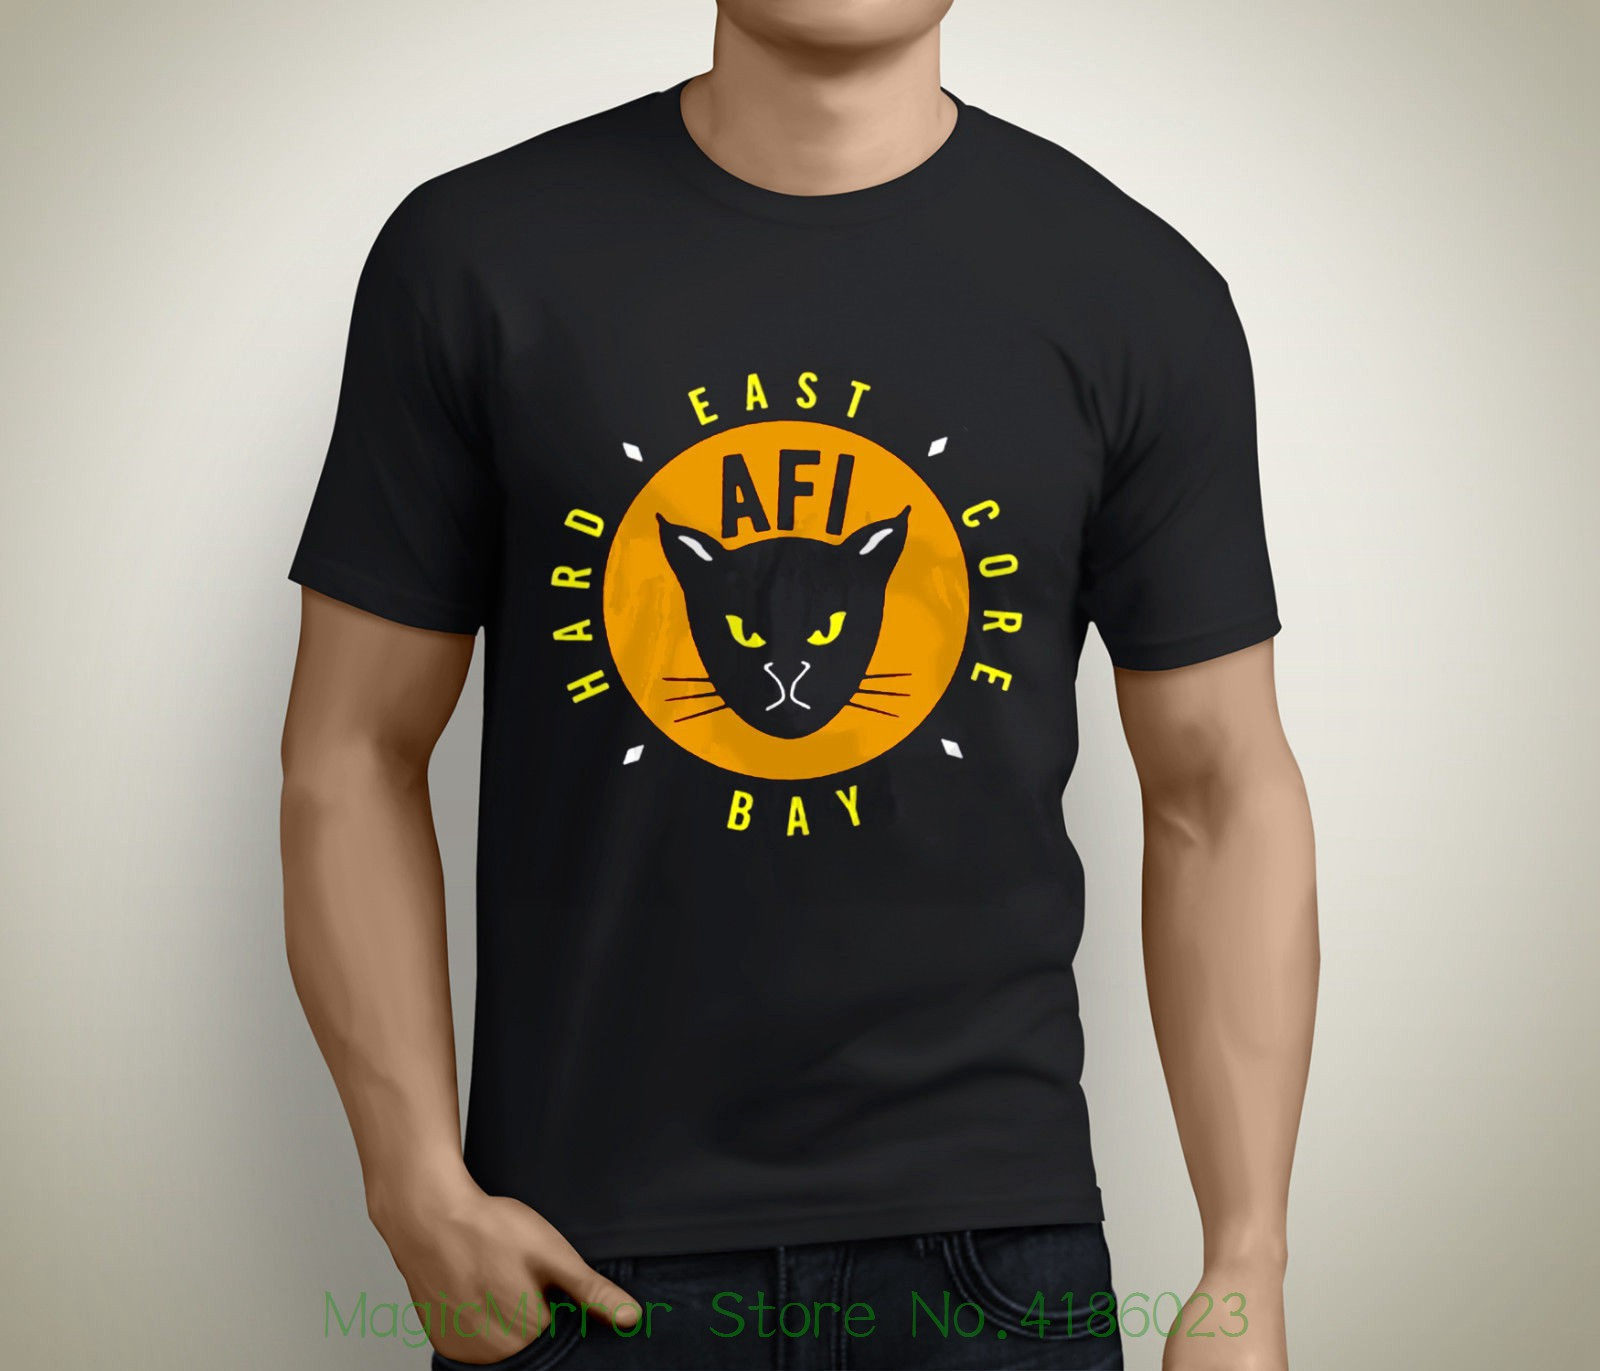 New Afi East Bay Kitty Rock Band Short Sleeve Mens Black T-shirt Size S To 5xl Printed Mens Men T Shirt